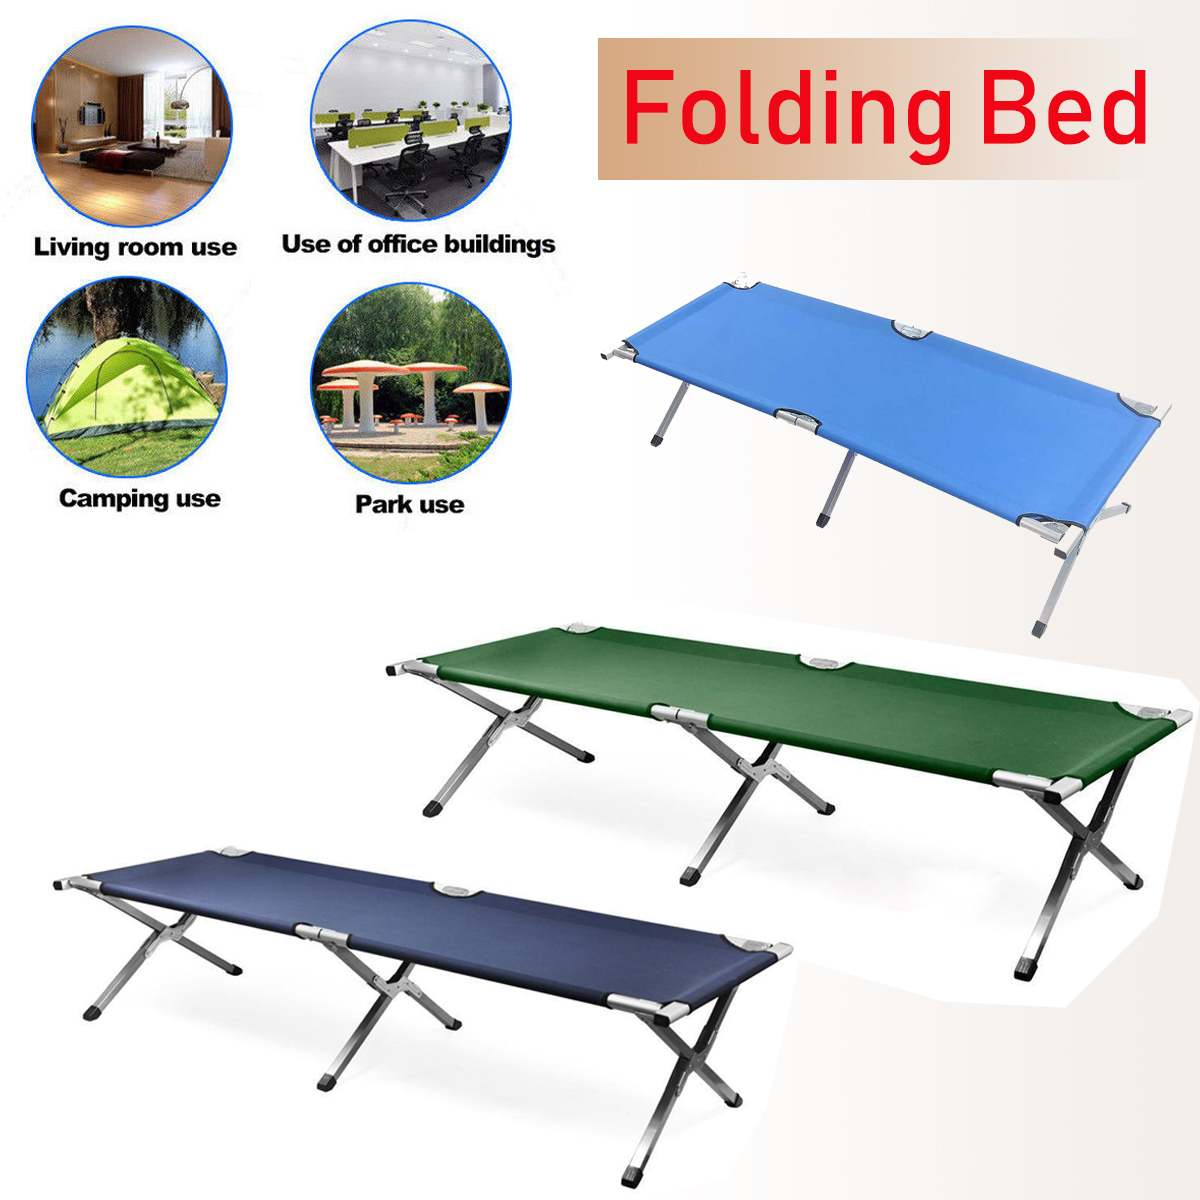 Aluminium Steel 600D  PVC Oxford Outdoor Portable Military Folding Camping Cot XL Bed With Carry Bag Hiking Fishing Chair Bed